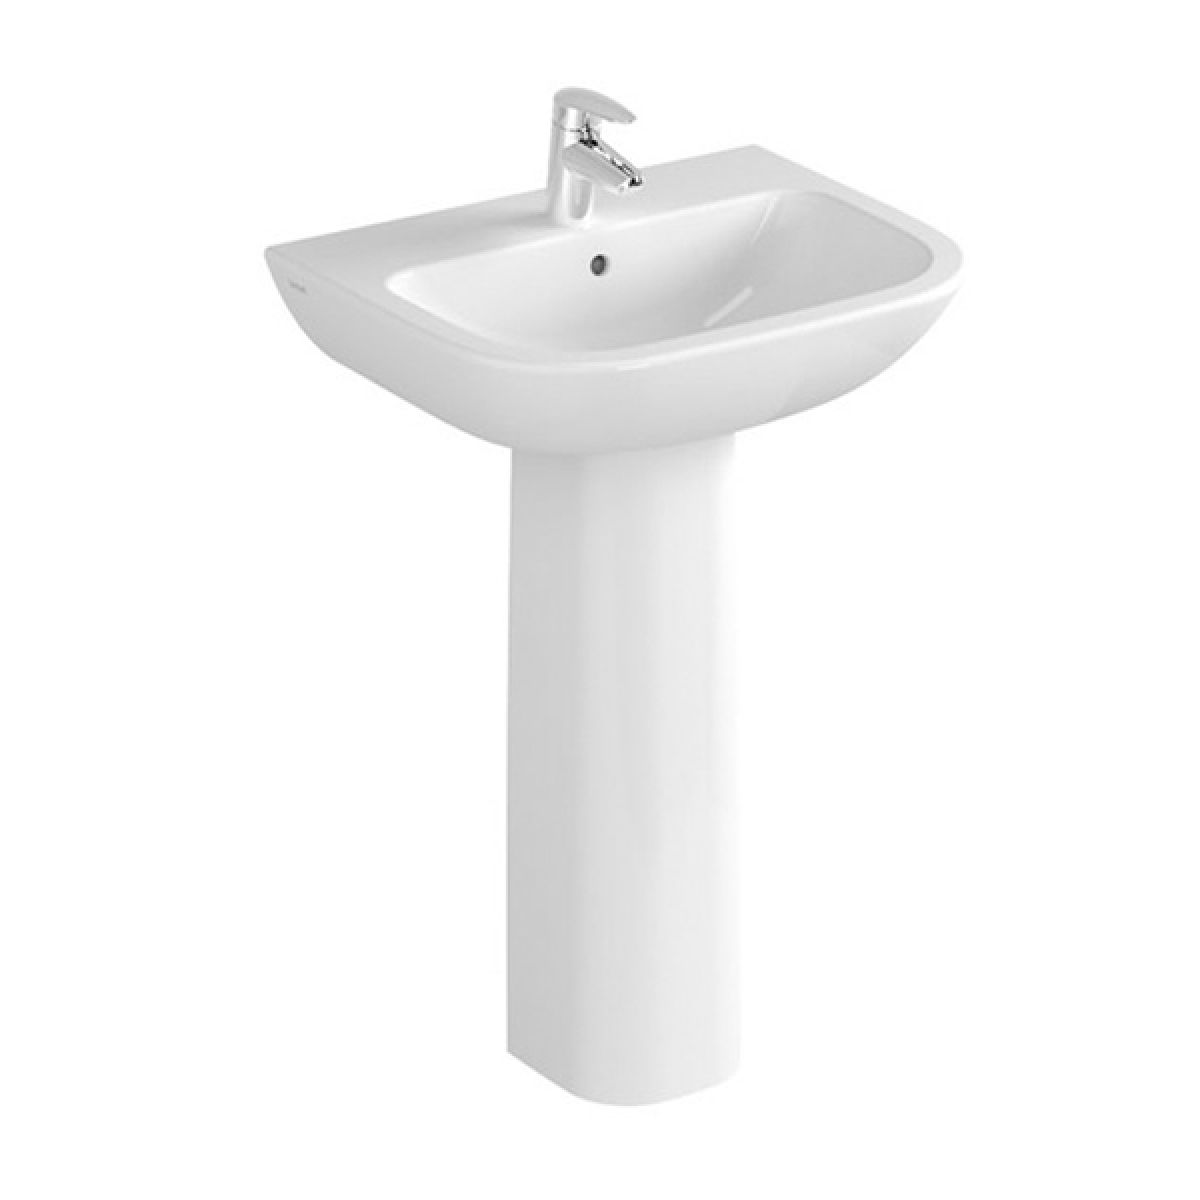 Vitra S20 Cloakroom Basin with Full Pedestal 500mm